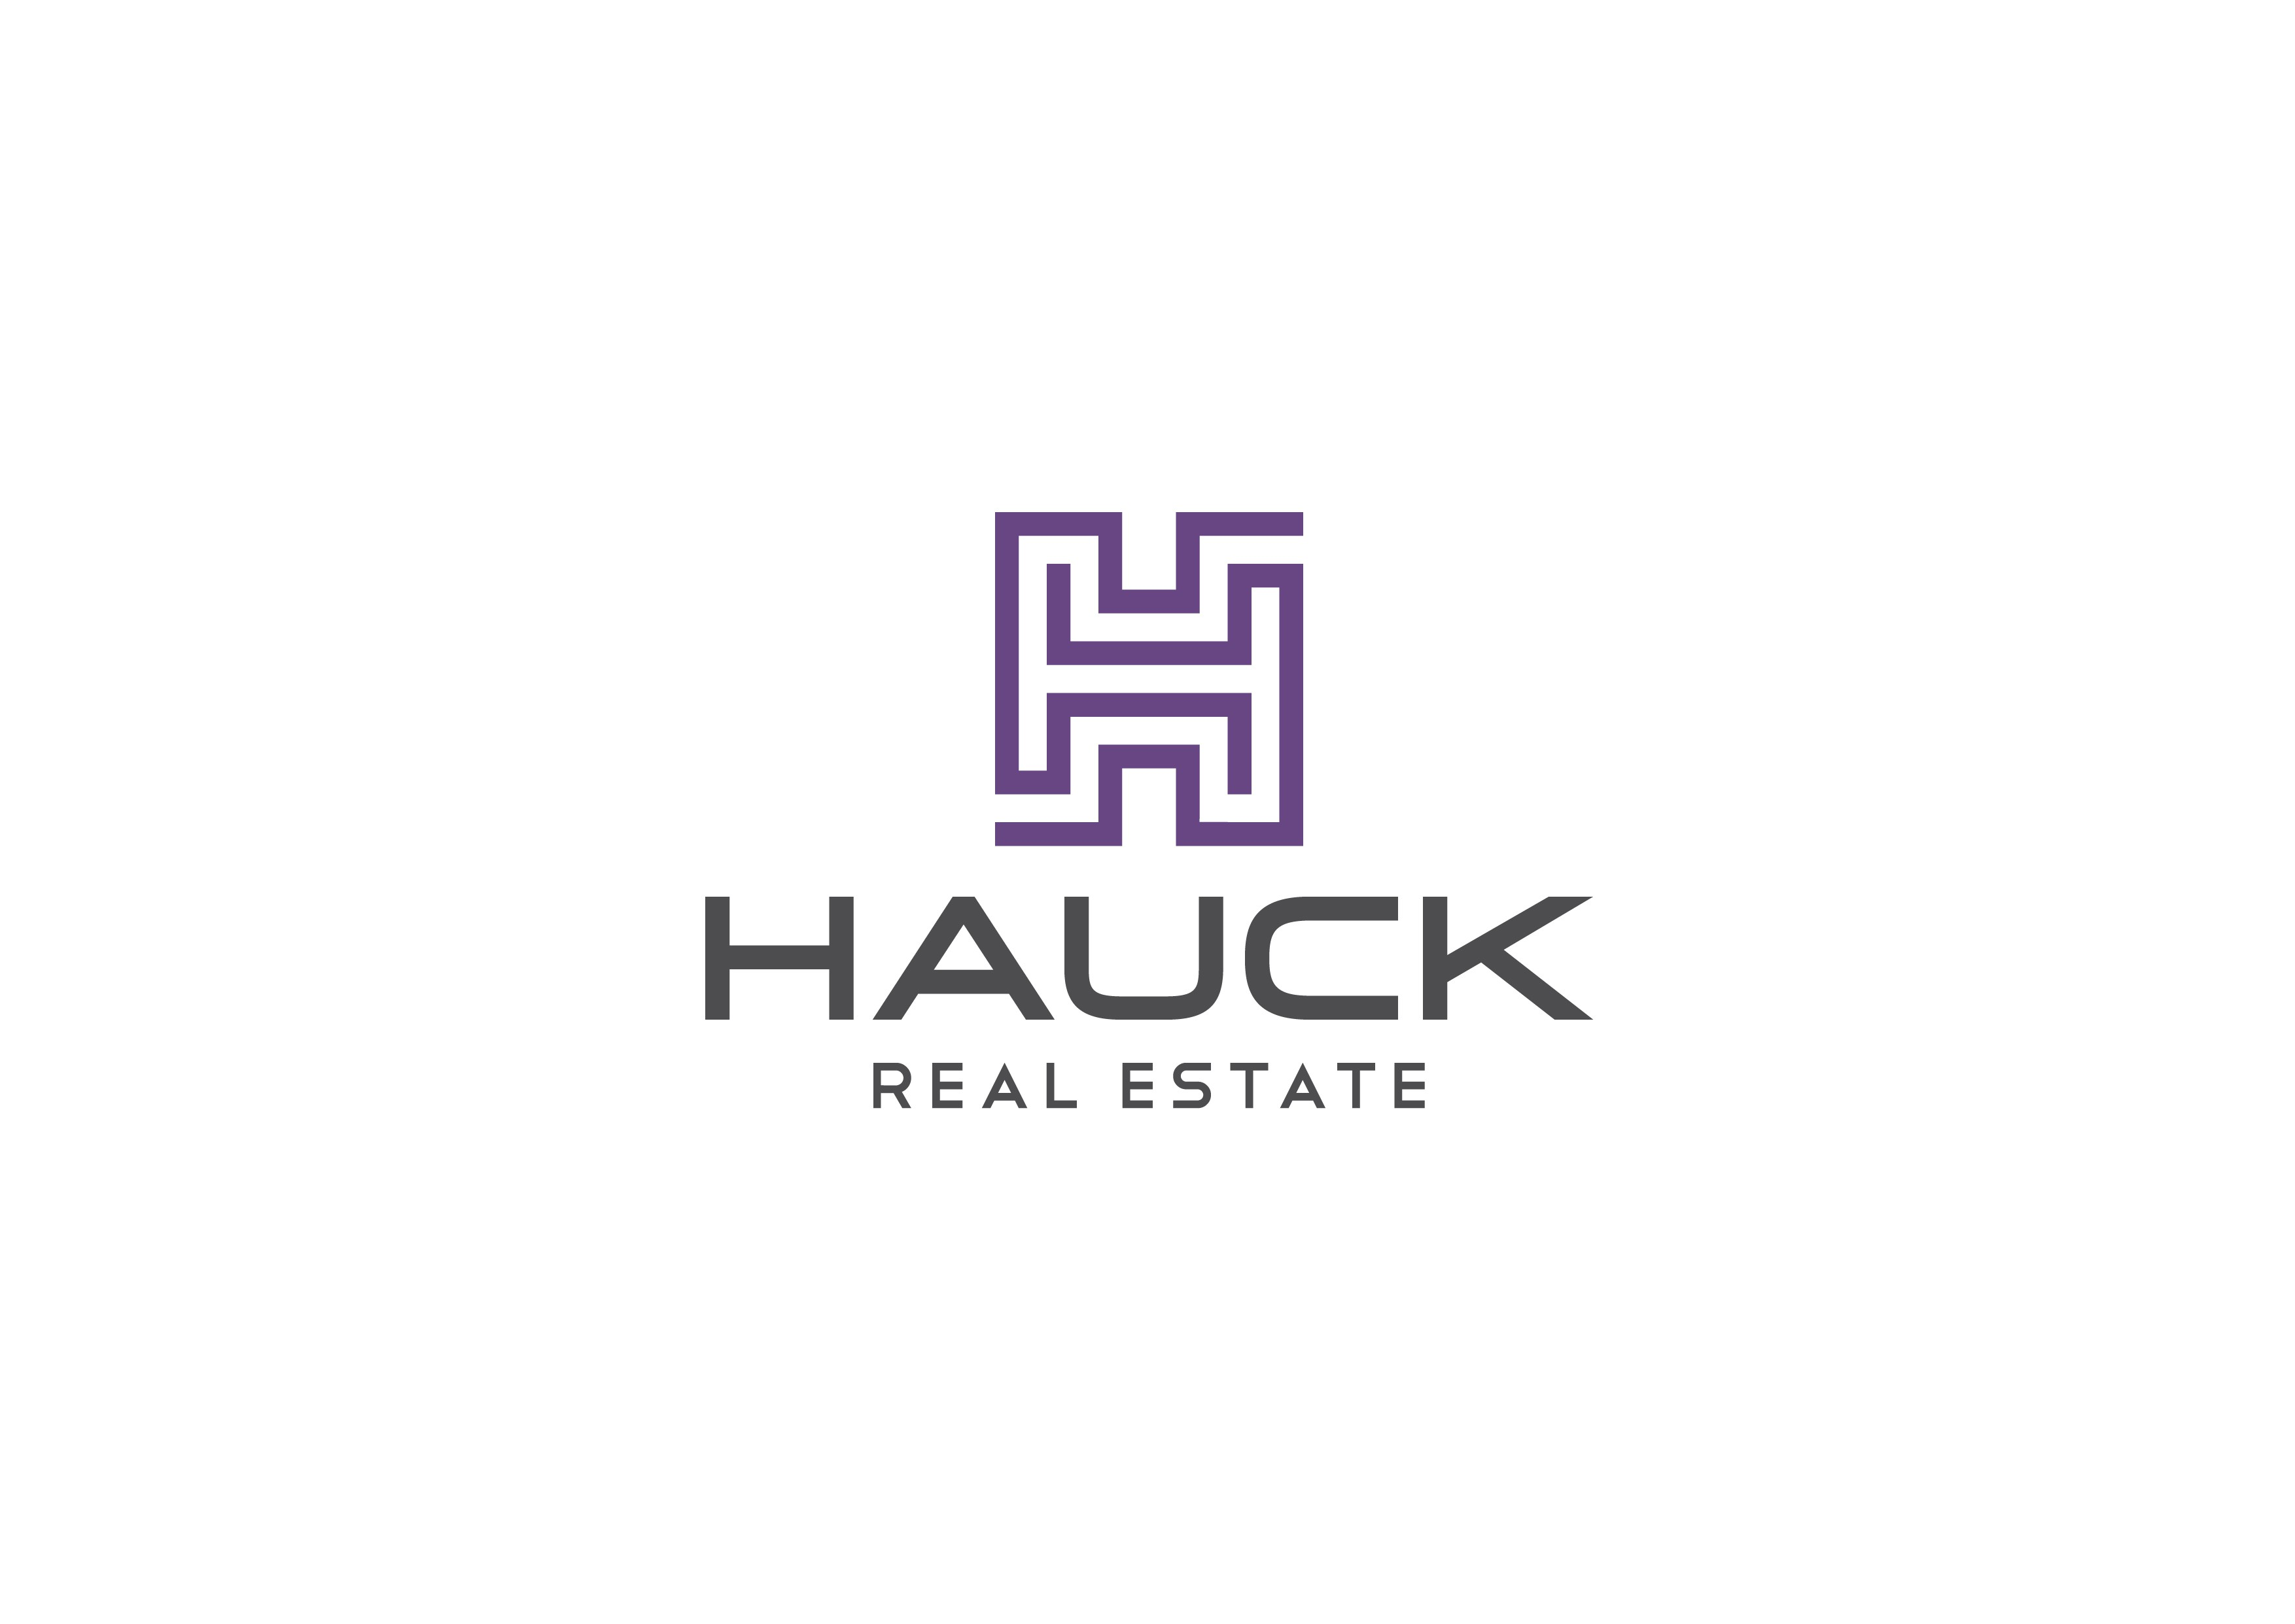 Classy, Clean Real Estate Logo Needed